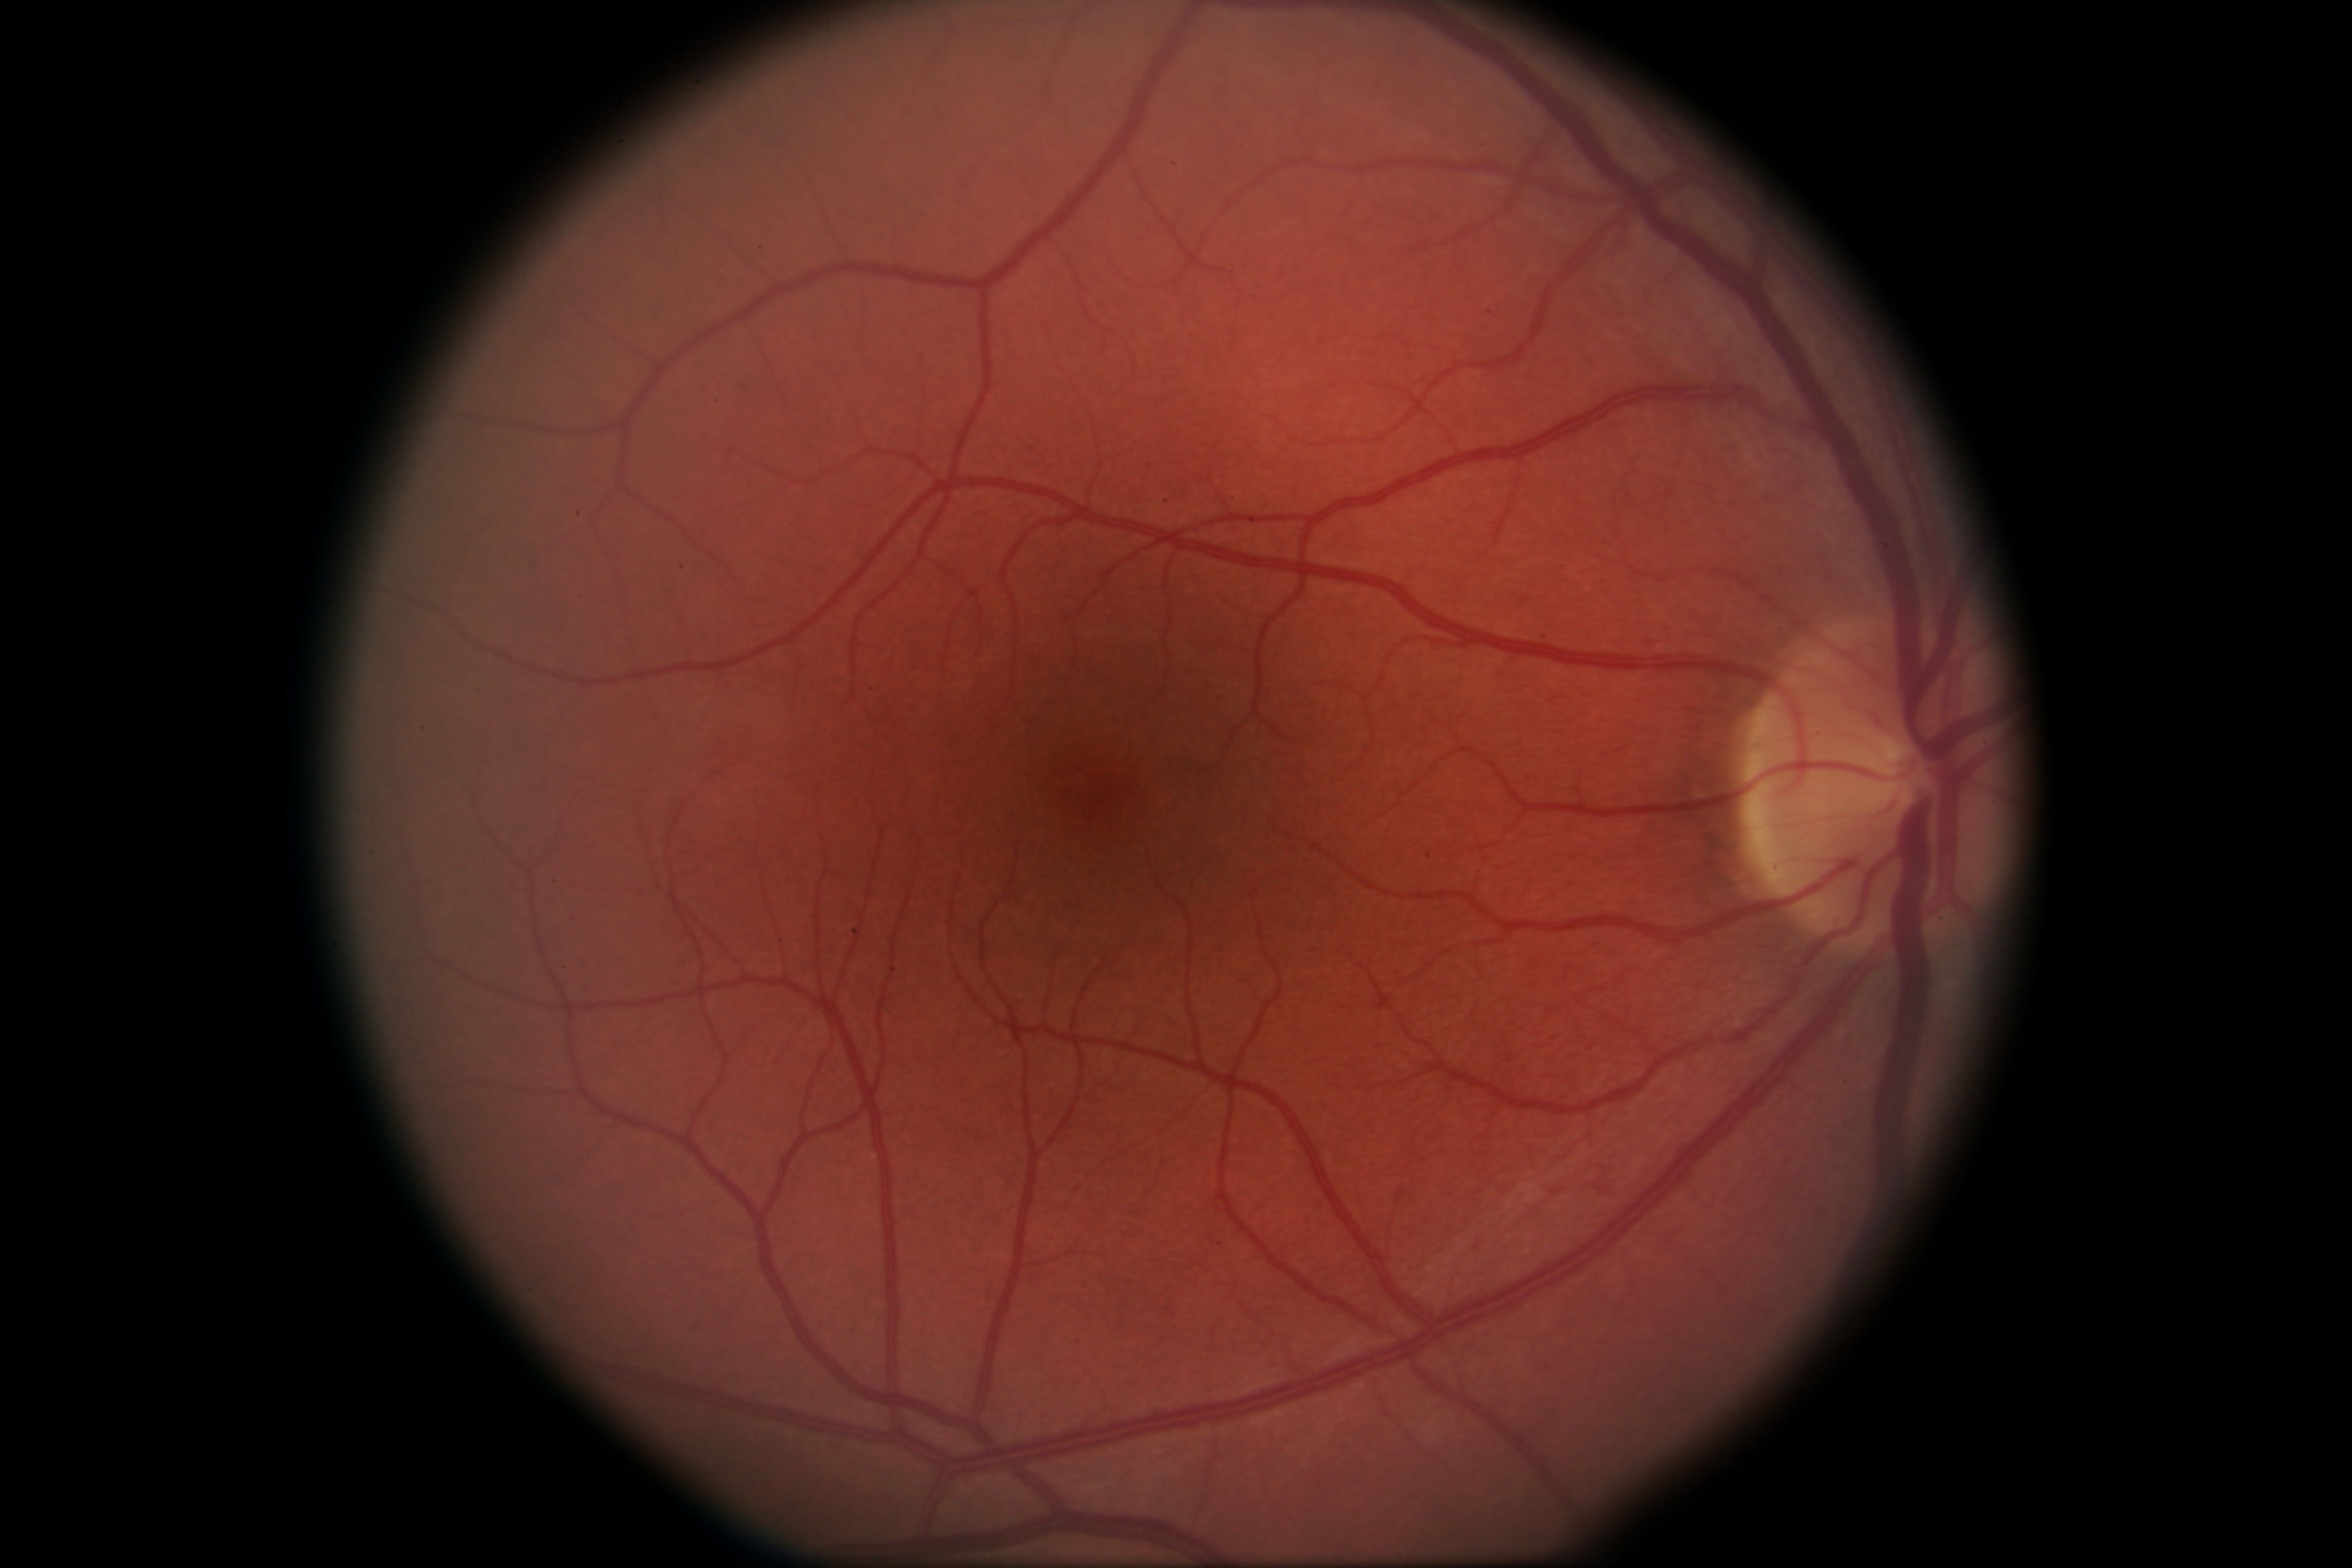 // <p>Normal Right Macula</p>